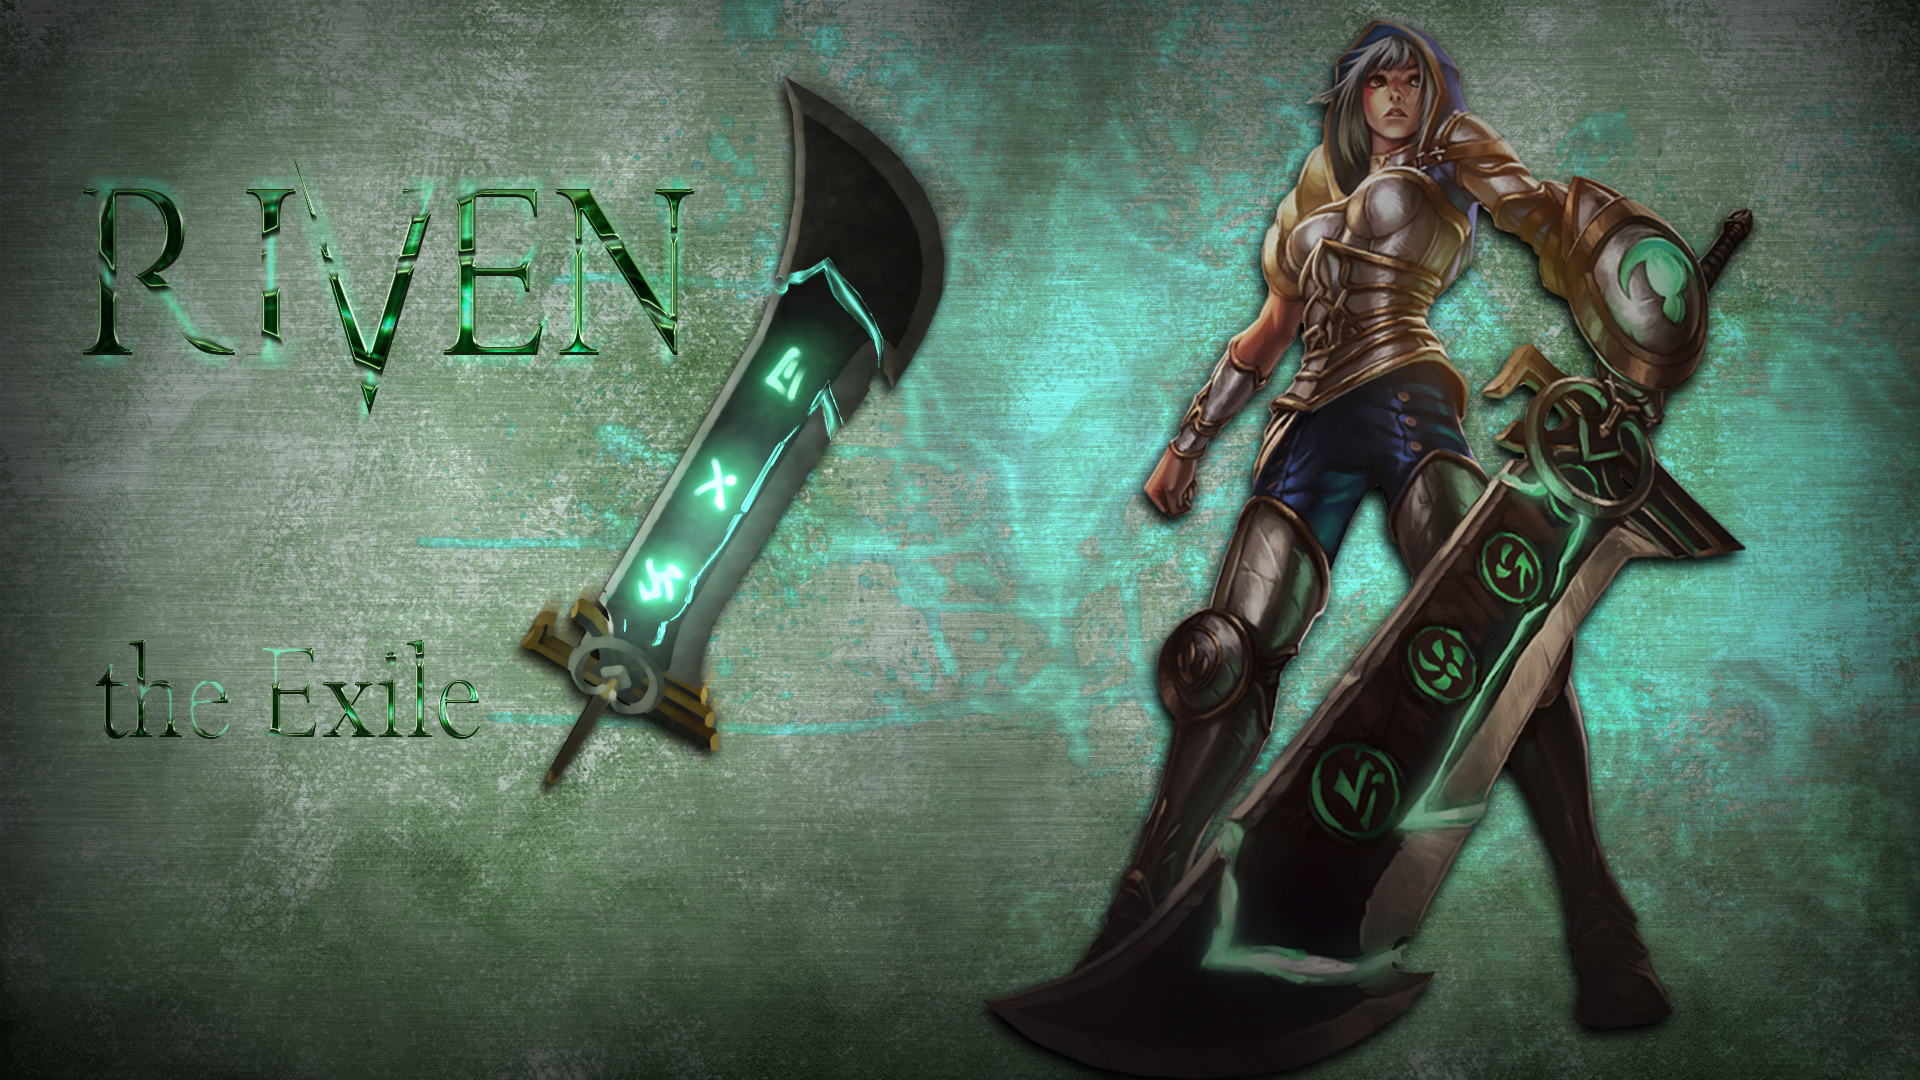 Redeemed Riven | LoLWallpapers